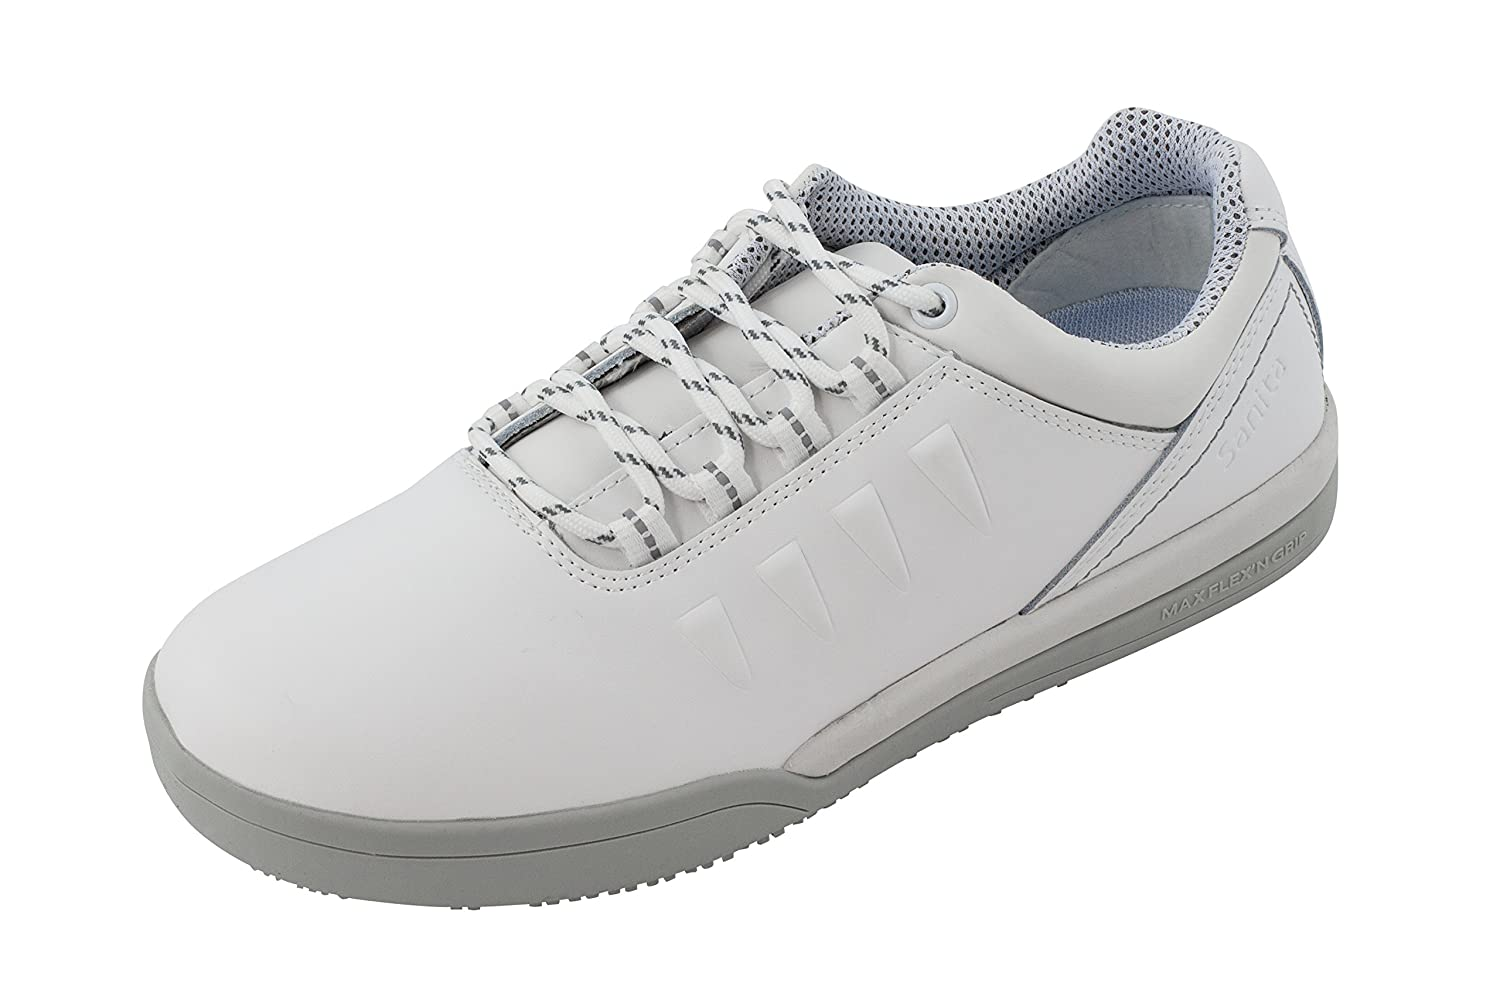 Sanita San-Chef Lace Shoe-O2, Scarpe Antinfortunistiche Unisex – Adulto  Bianco (Bianco)